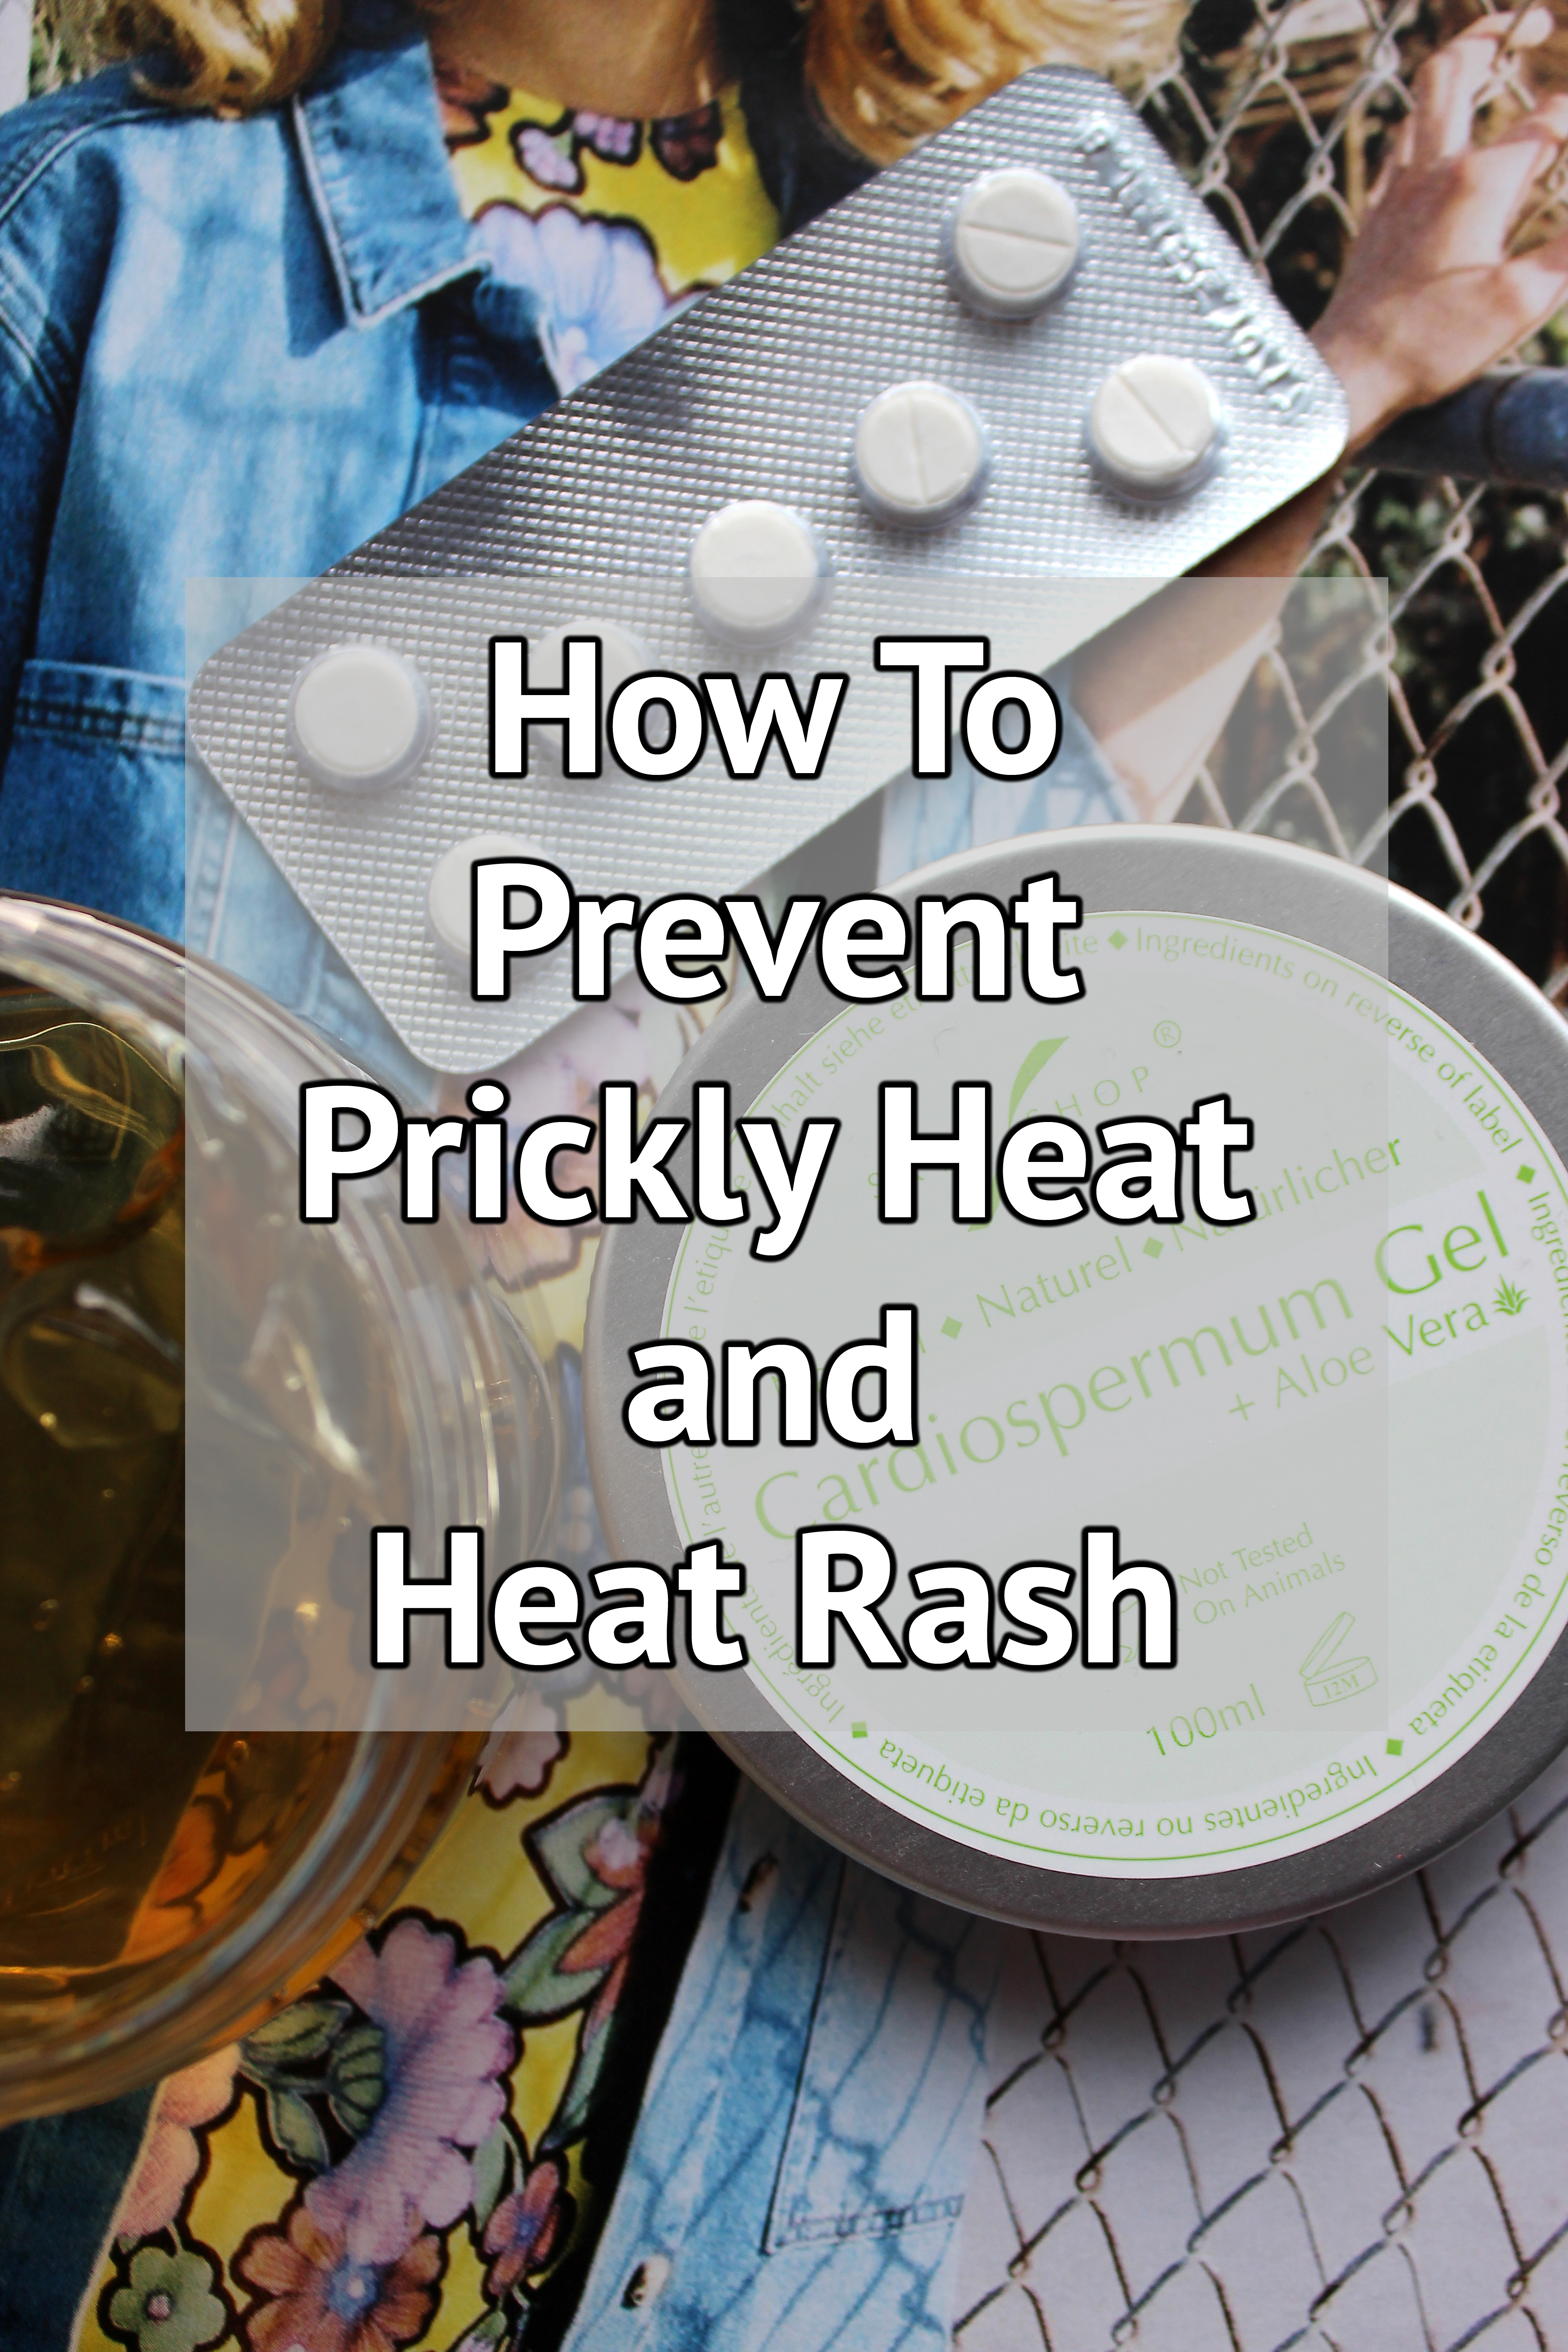 How to prevent heat rash or prickly heat in children naturally during summer